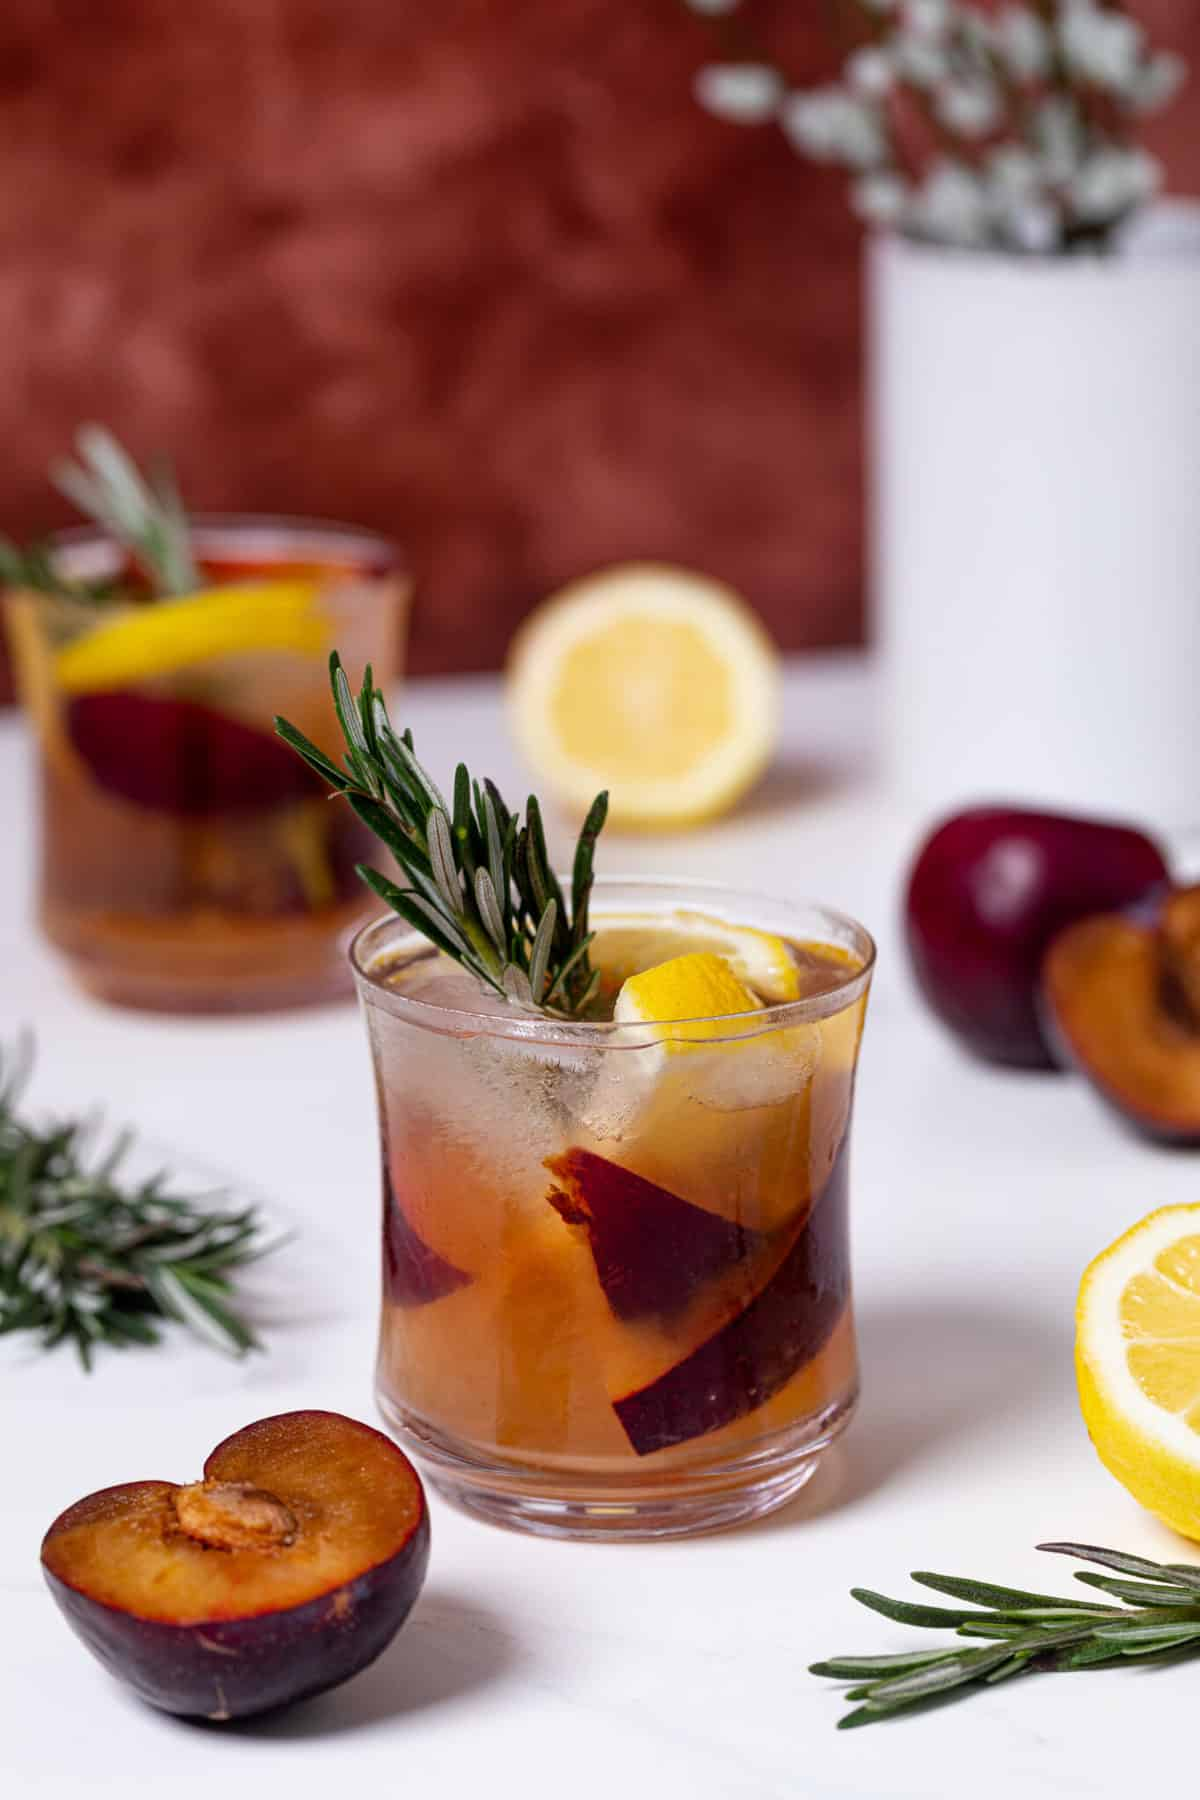 Plum Lemonade in a glass with rosemary and cut up fruit around